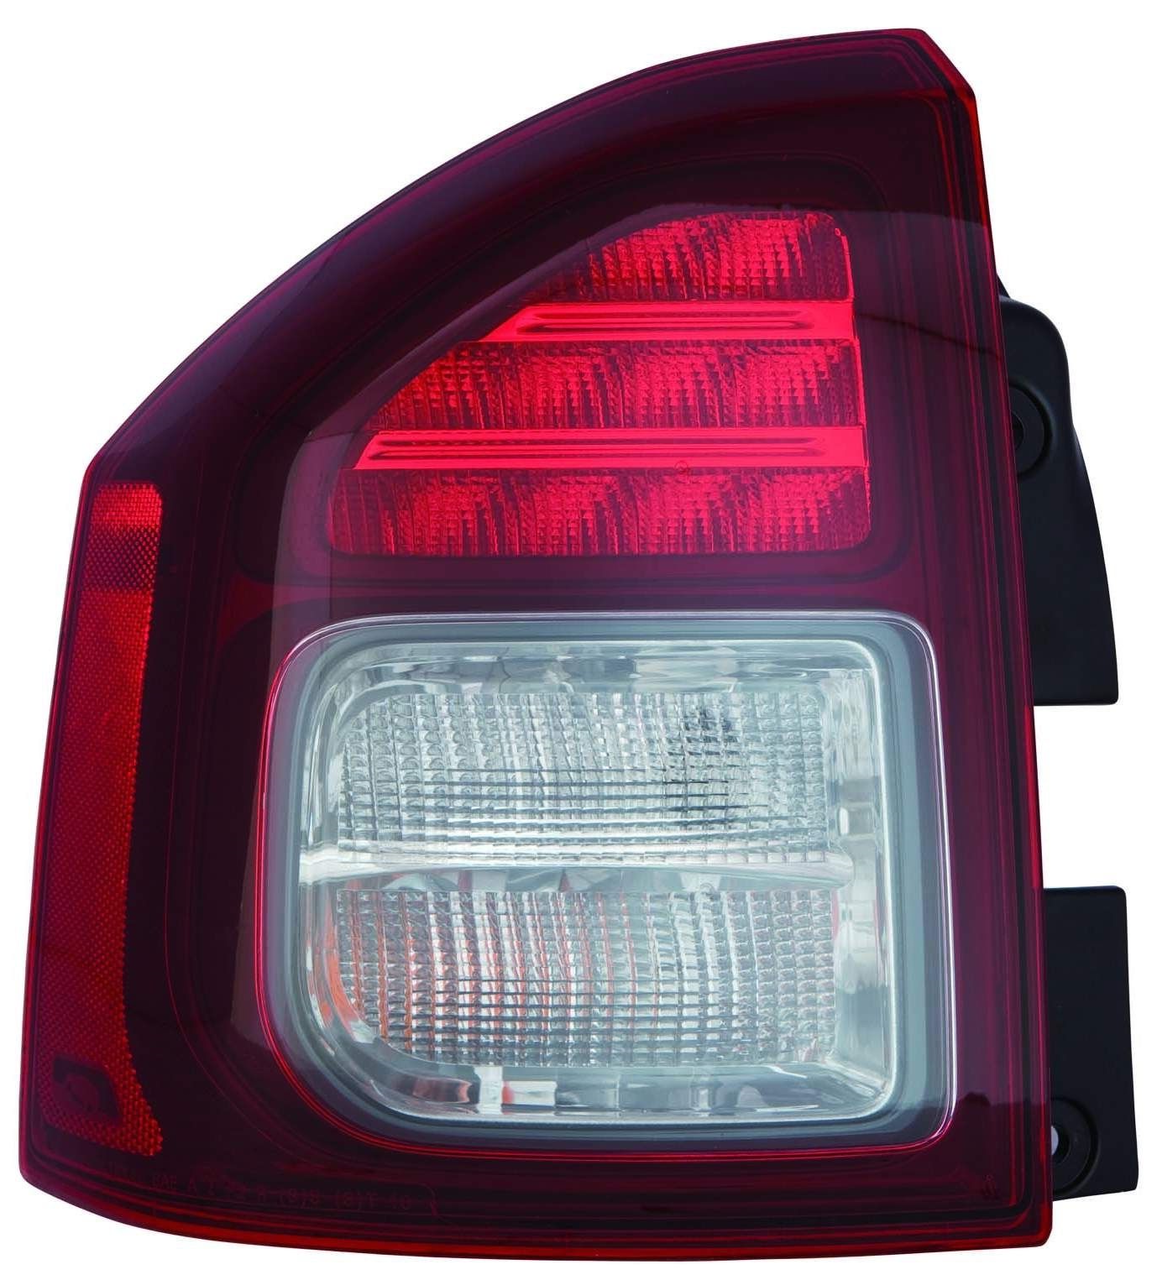 Jeep Compass 2014 2015 tail light left driver